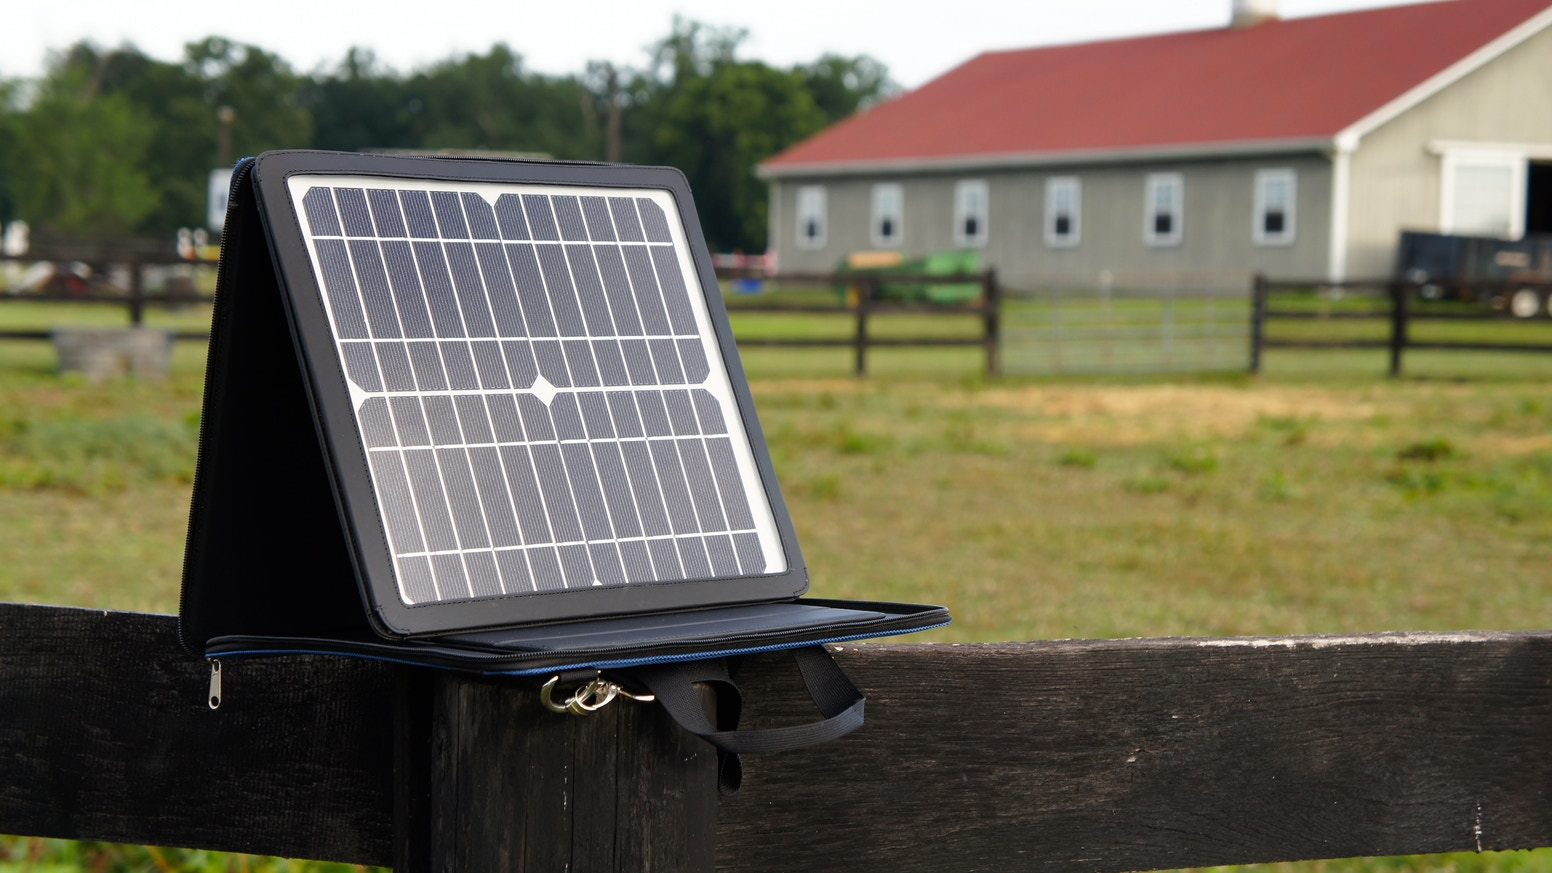 Sunvolt Portable Solar Power Station By Don Cayelli Kickstarter It Take To Fully Charge With The Panel Circuit Schematic 3 A High Powered That Charges All Your Gadgets Directly From